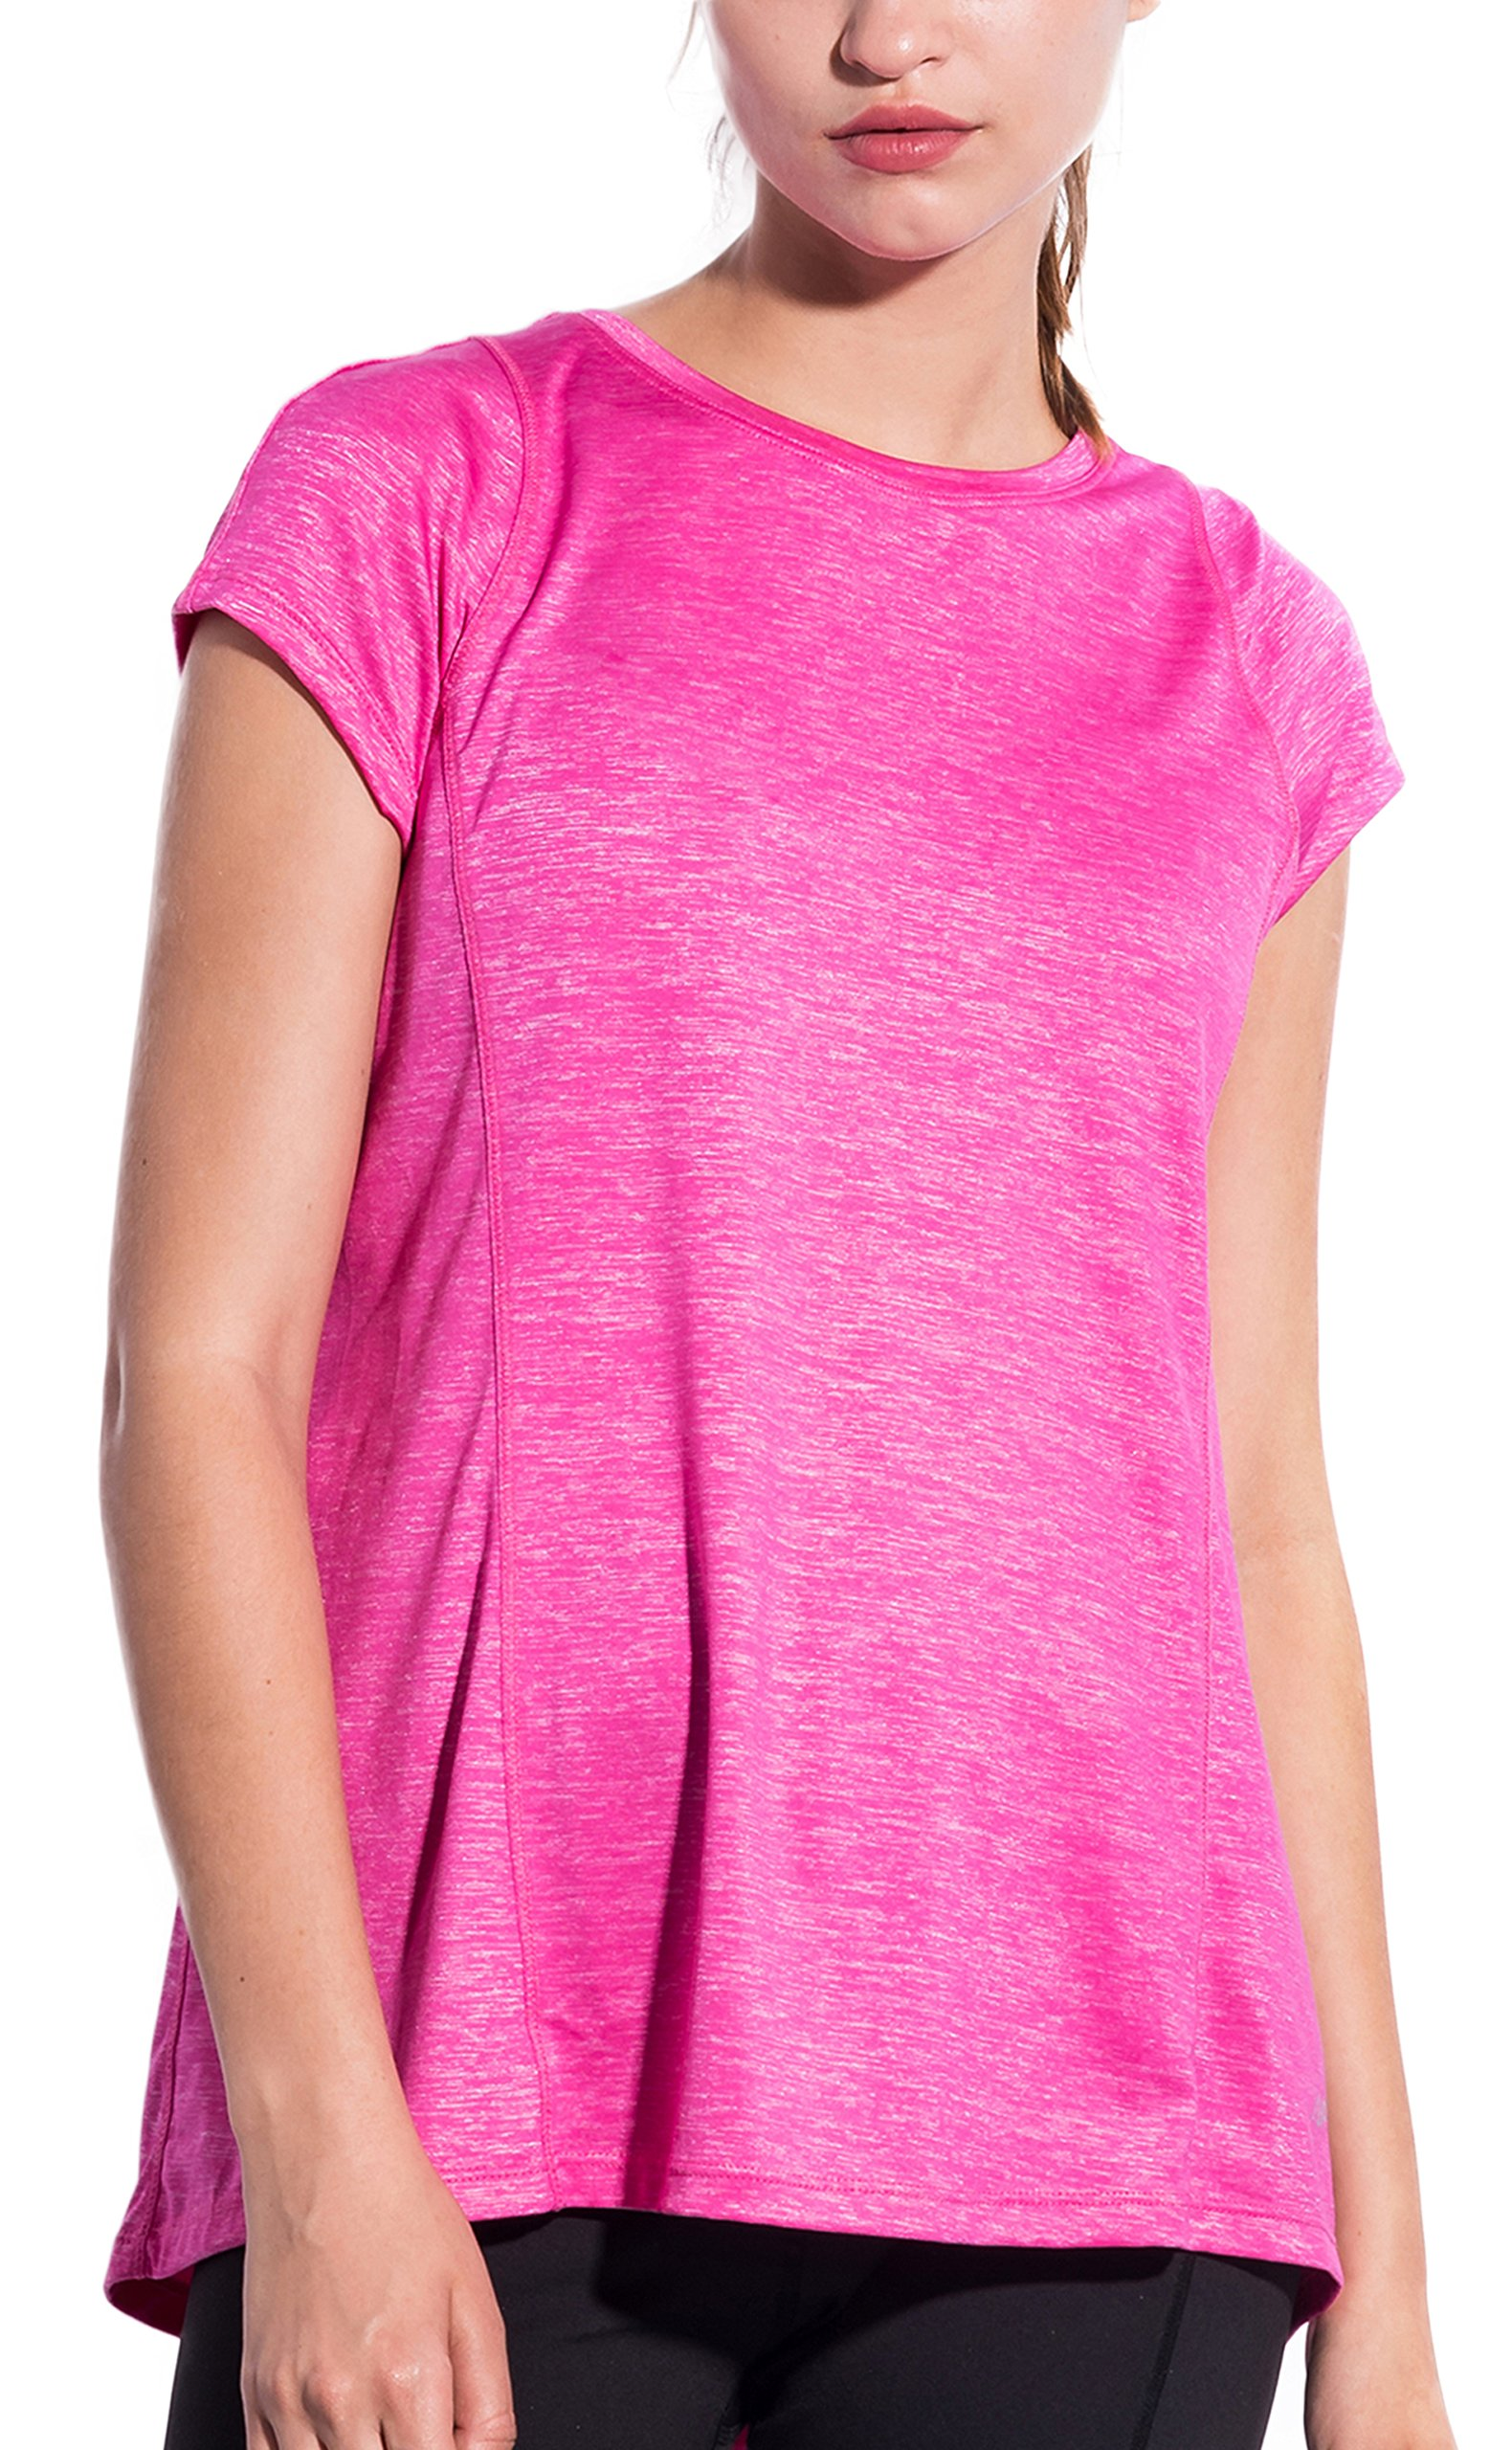 SPECIALMAGIC Women\'s Athletic Fashion Short Sleeve Round Neck Loose Tee T-Shirt (S 4, Rose Red)